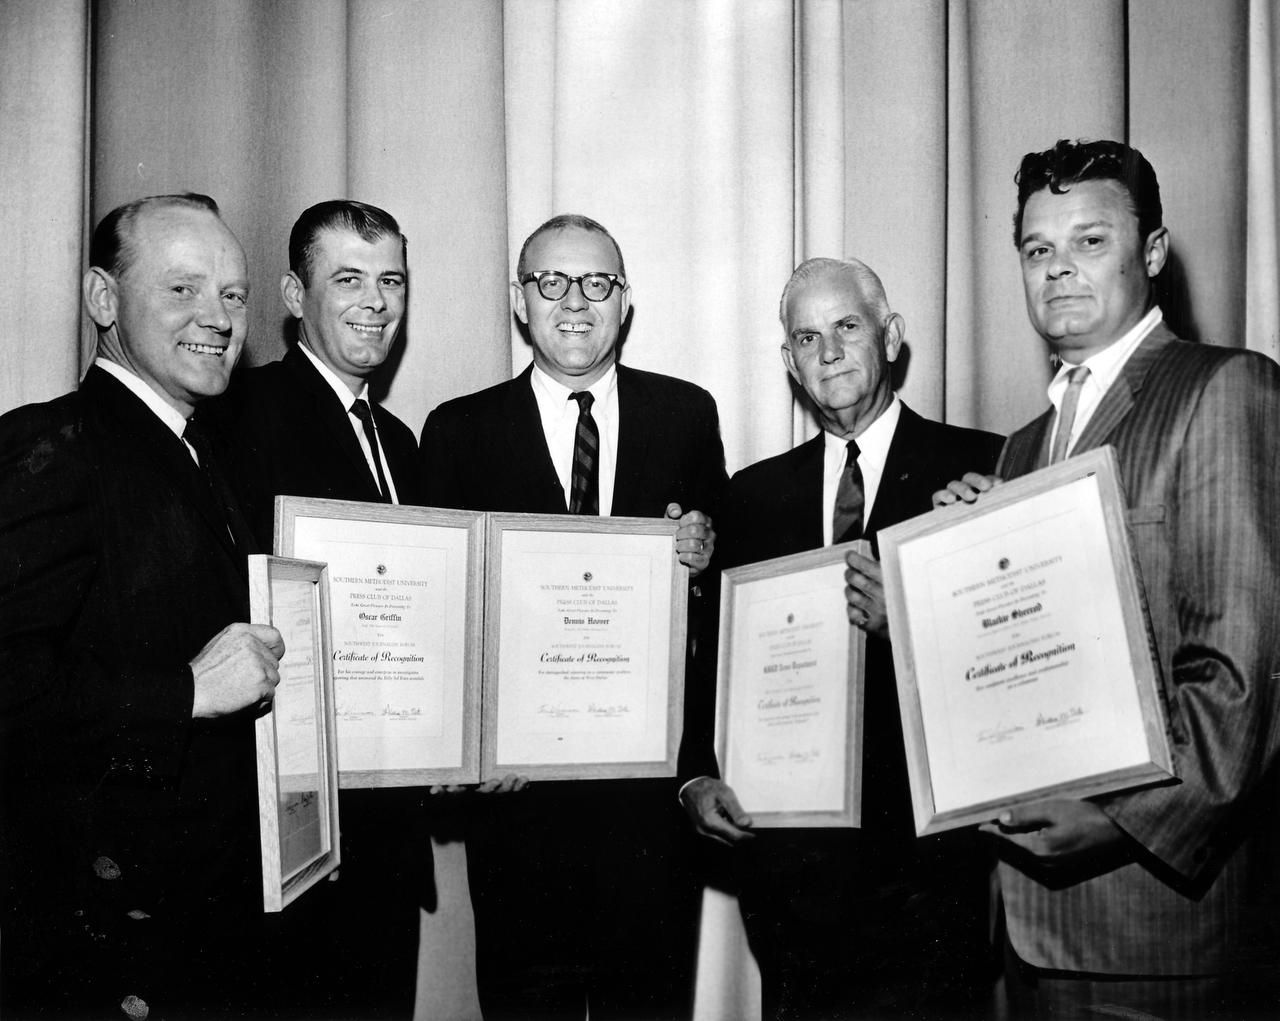 Blackie Sherrod (right), working for the Dallas Times Herald at the time, joined other newspaper honorees at the Southwest Journalism Forum Awards Luncheon in October 1962 at Southern Methodist University. Joining Sherrod were Eugene Patterson (left), Oscar Griffin, Dennis Hoover and Rembert James.